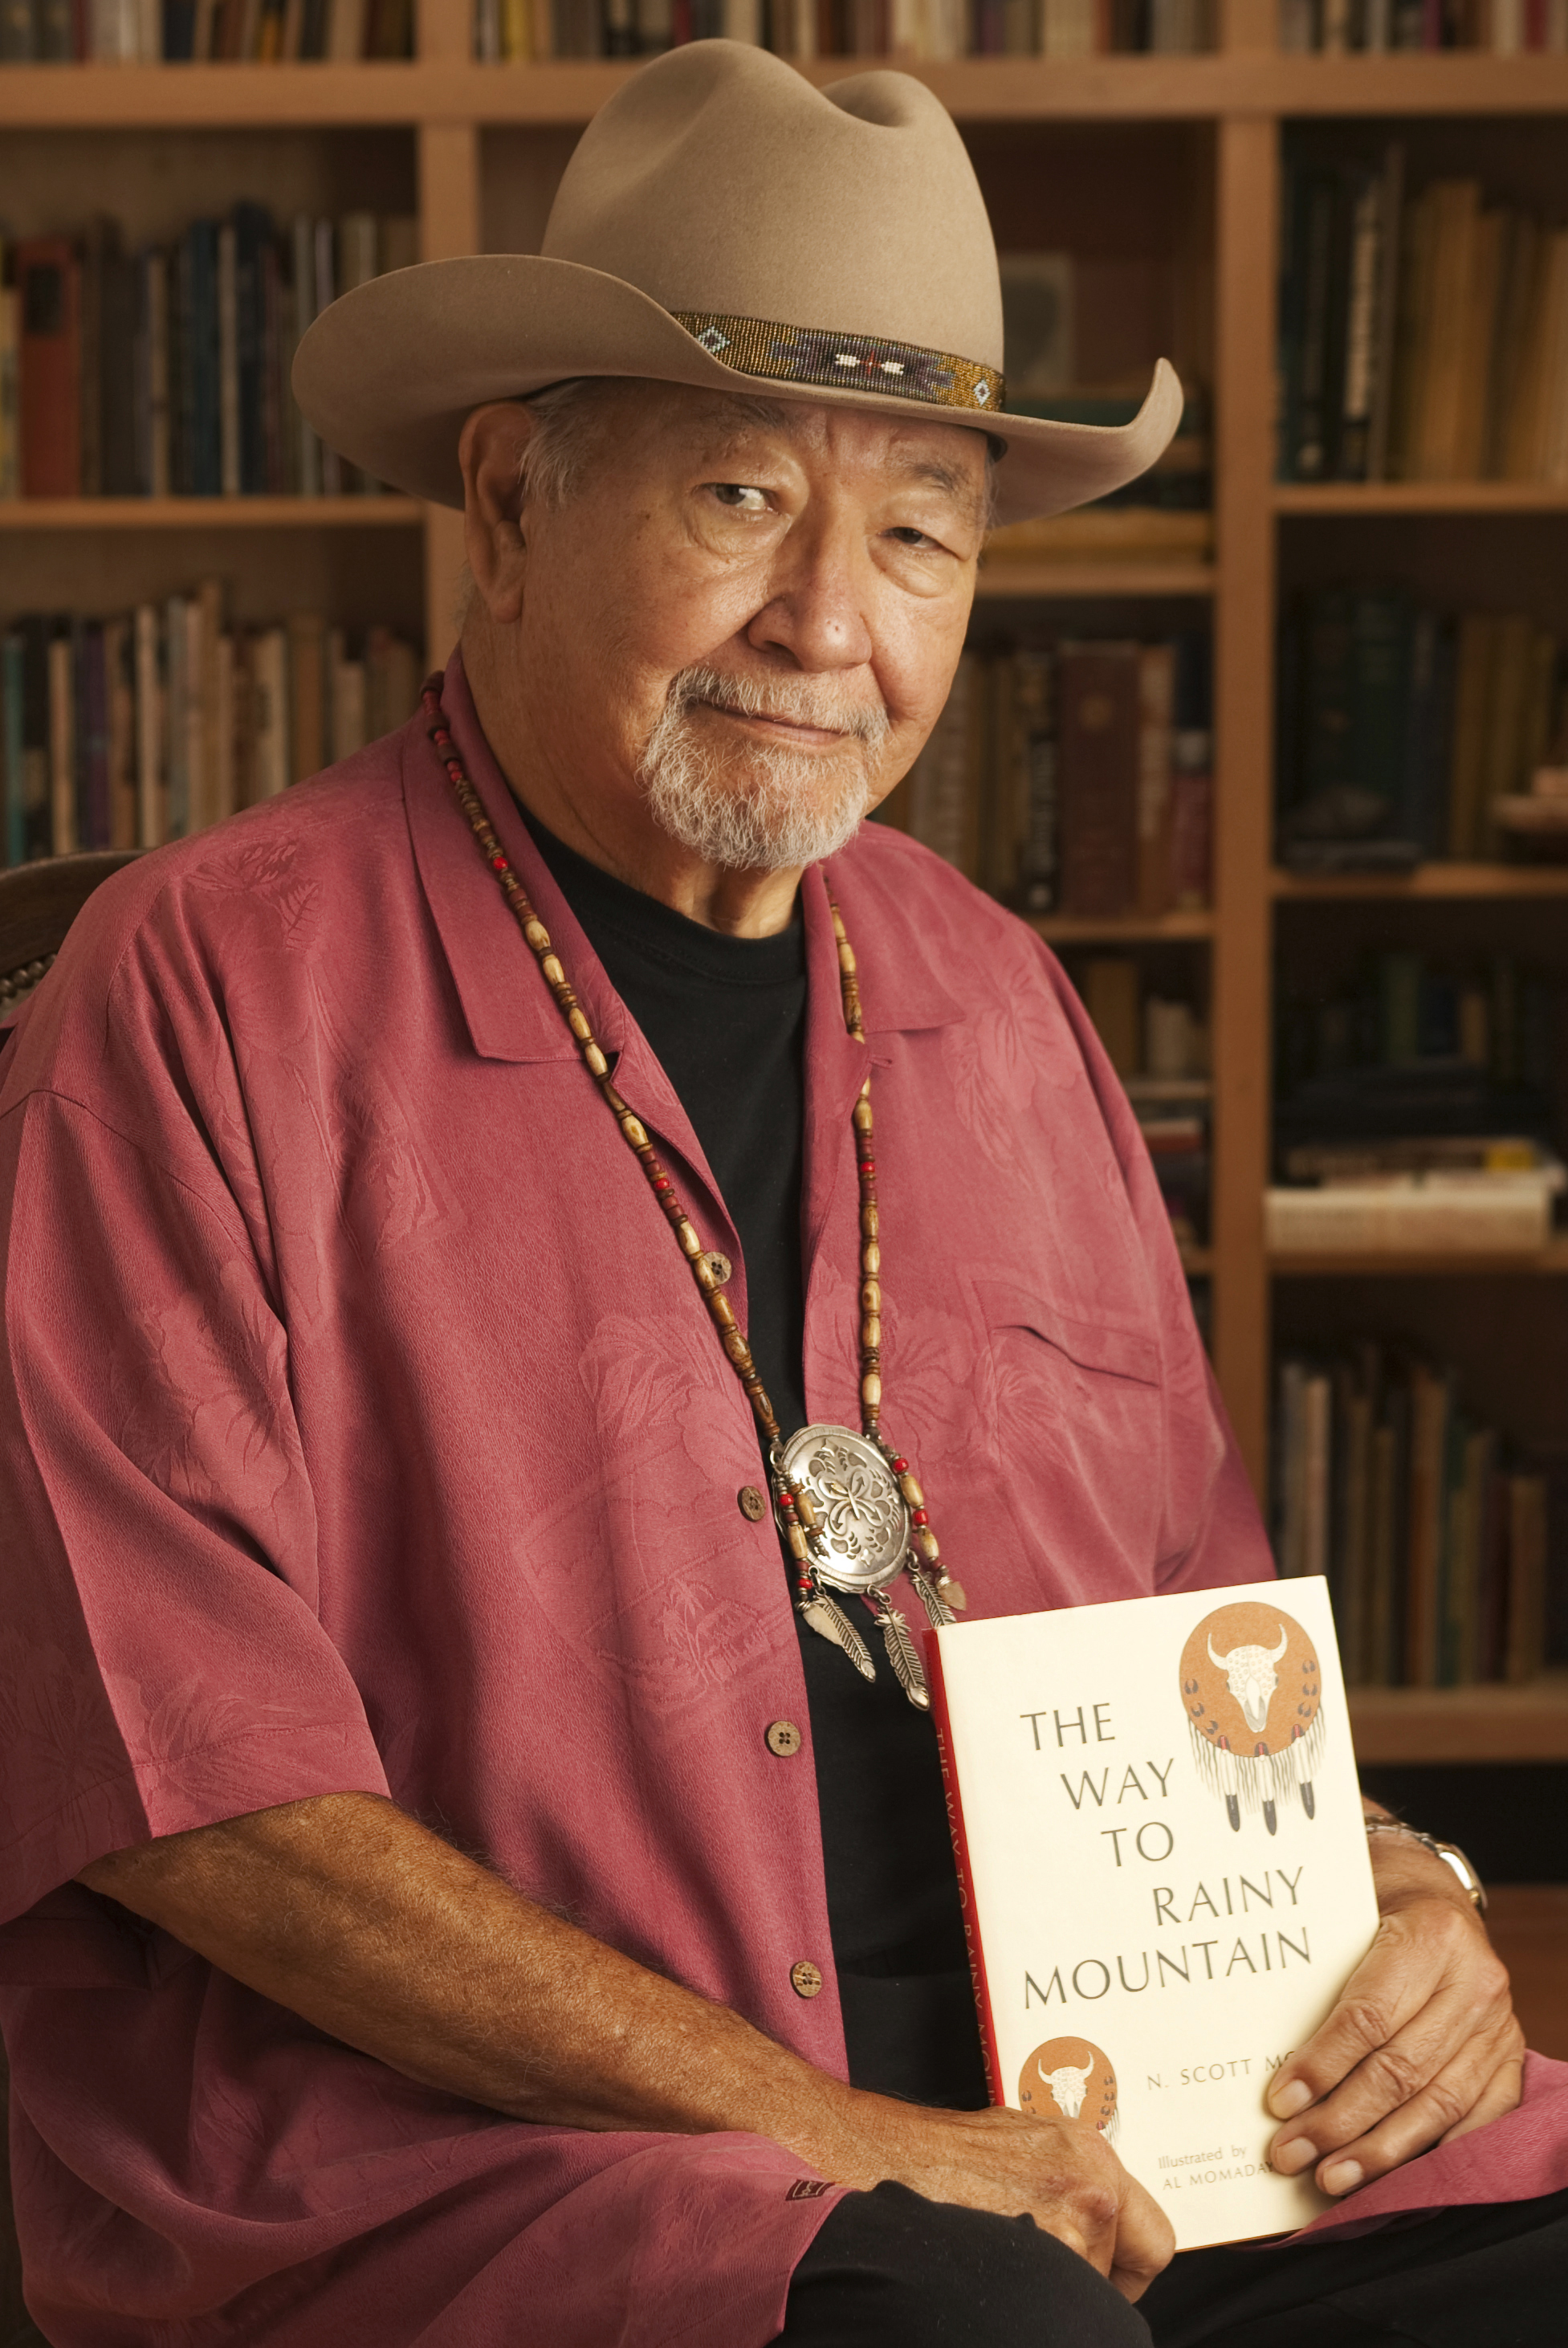 Return to Rainy Mountain: Scott Momaday